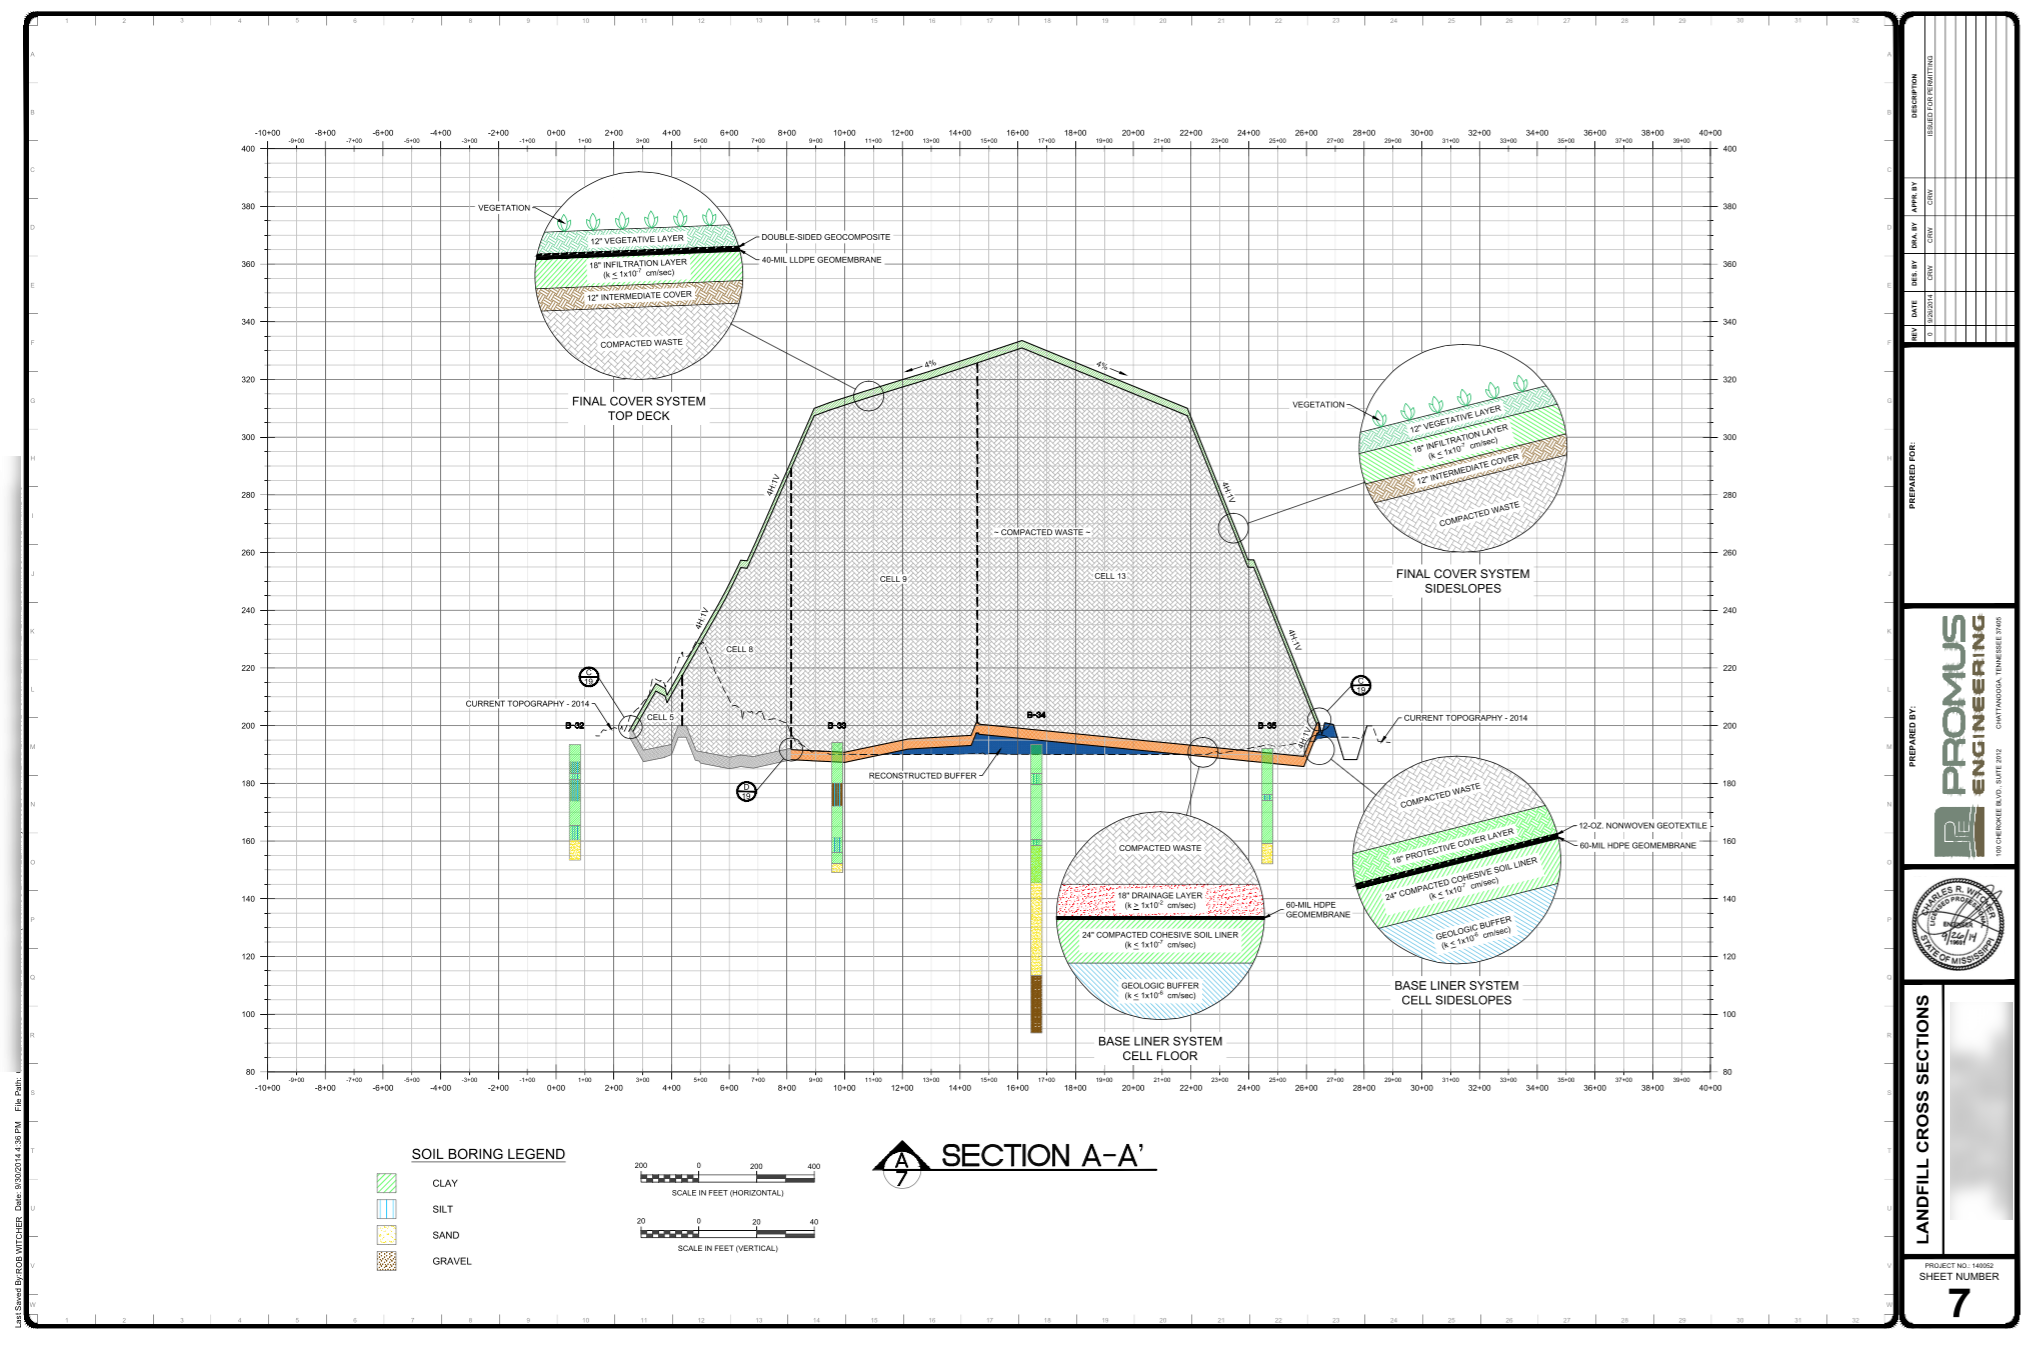 Permit renewal - landfill cross section and section details, municipal solid waste facility, Mississippi.